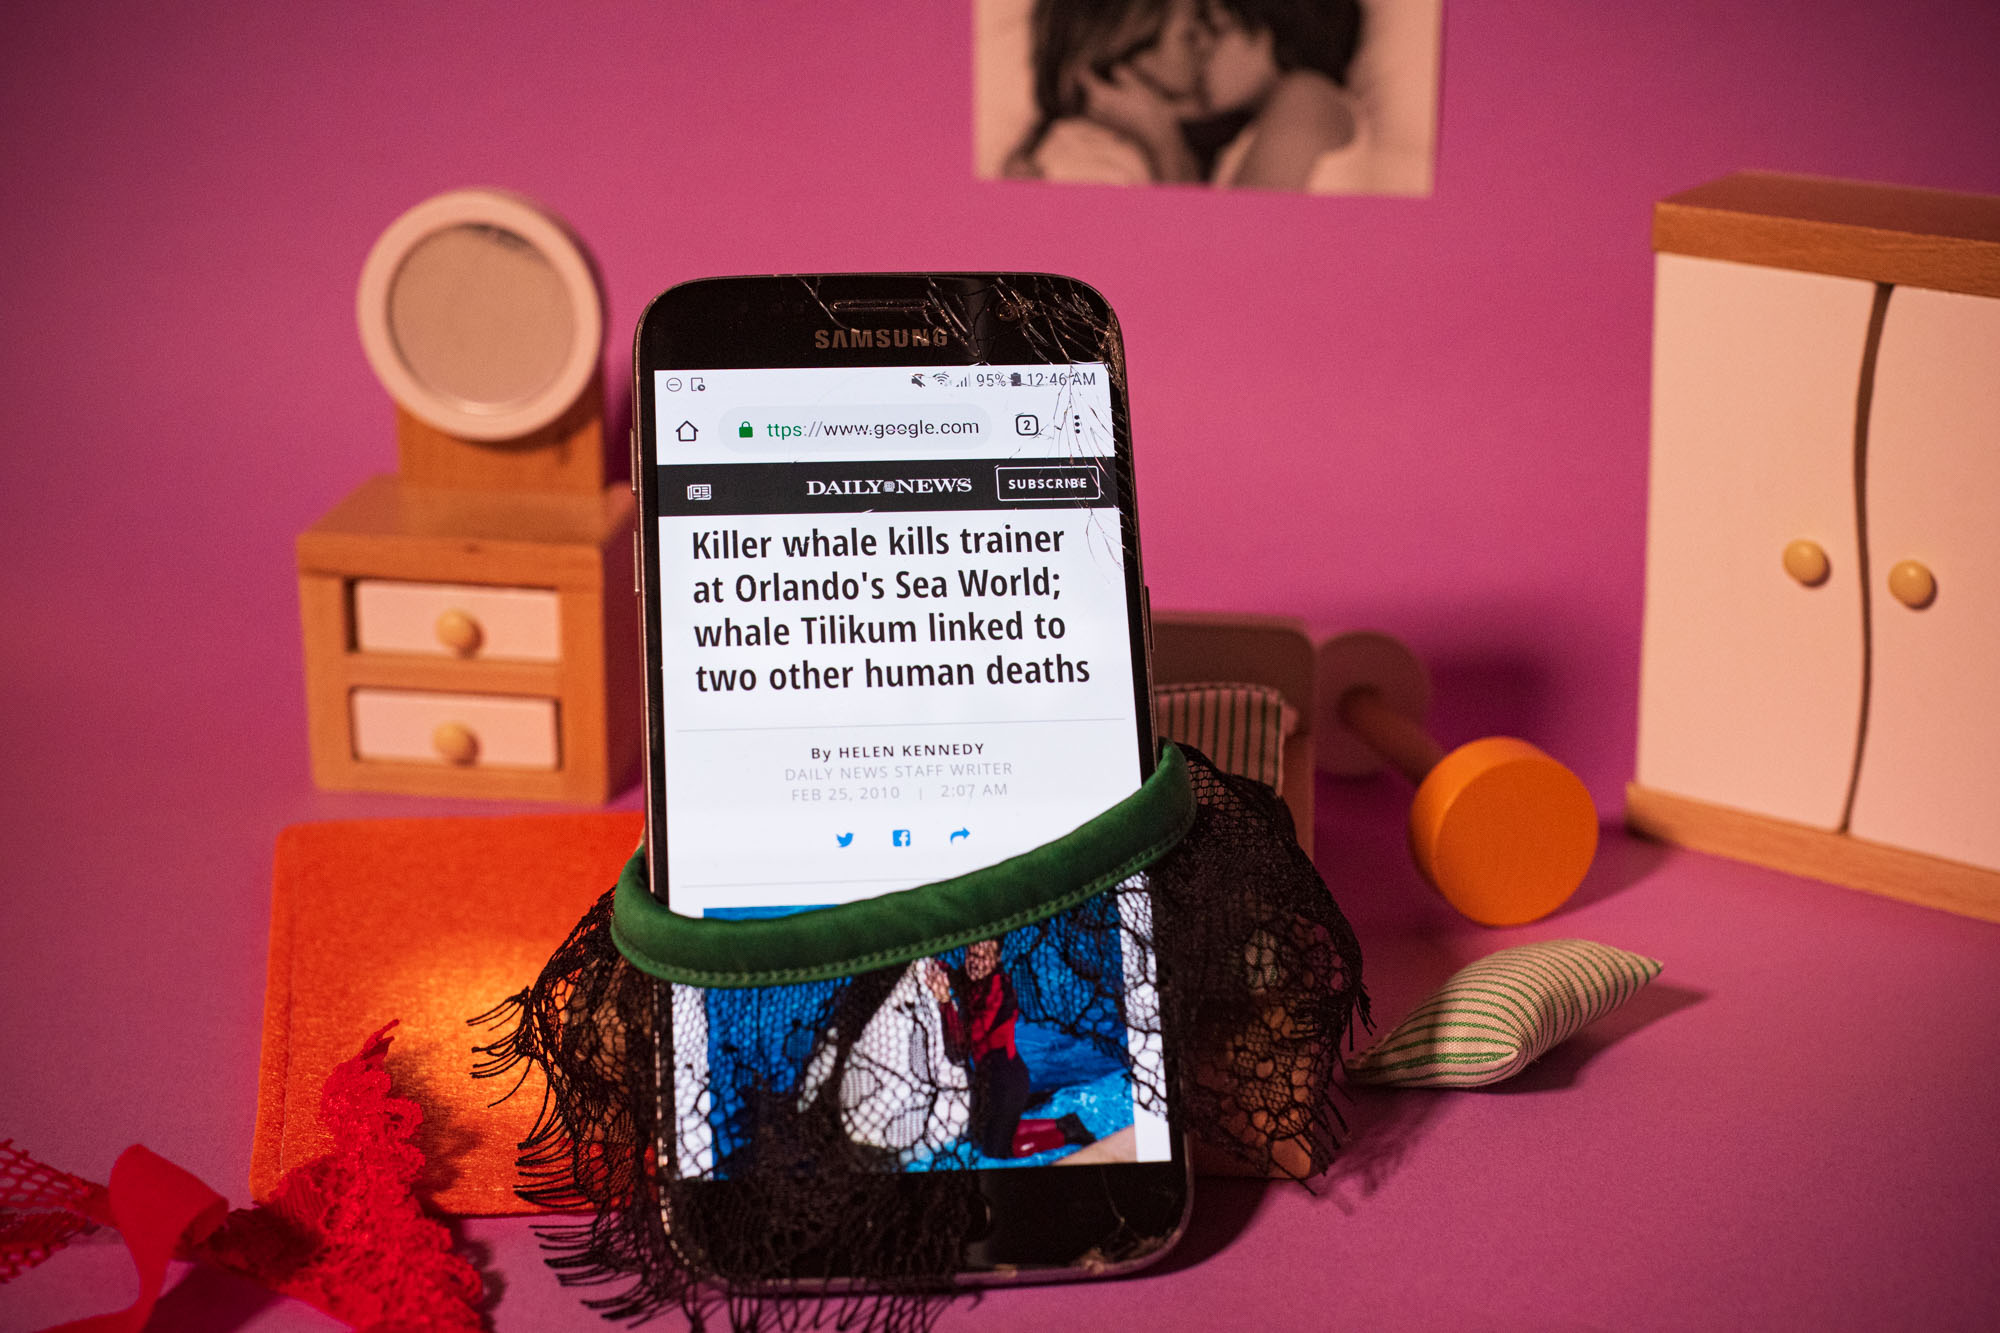 bad news is displayed on a smartphone wearing lingerie posed in a miniature bedroom set